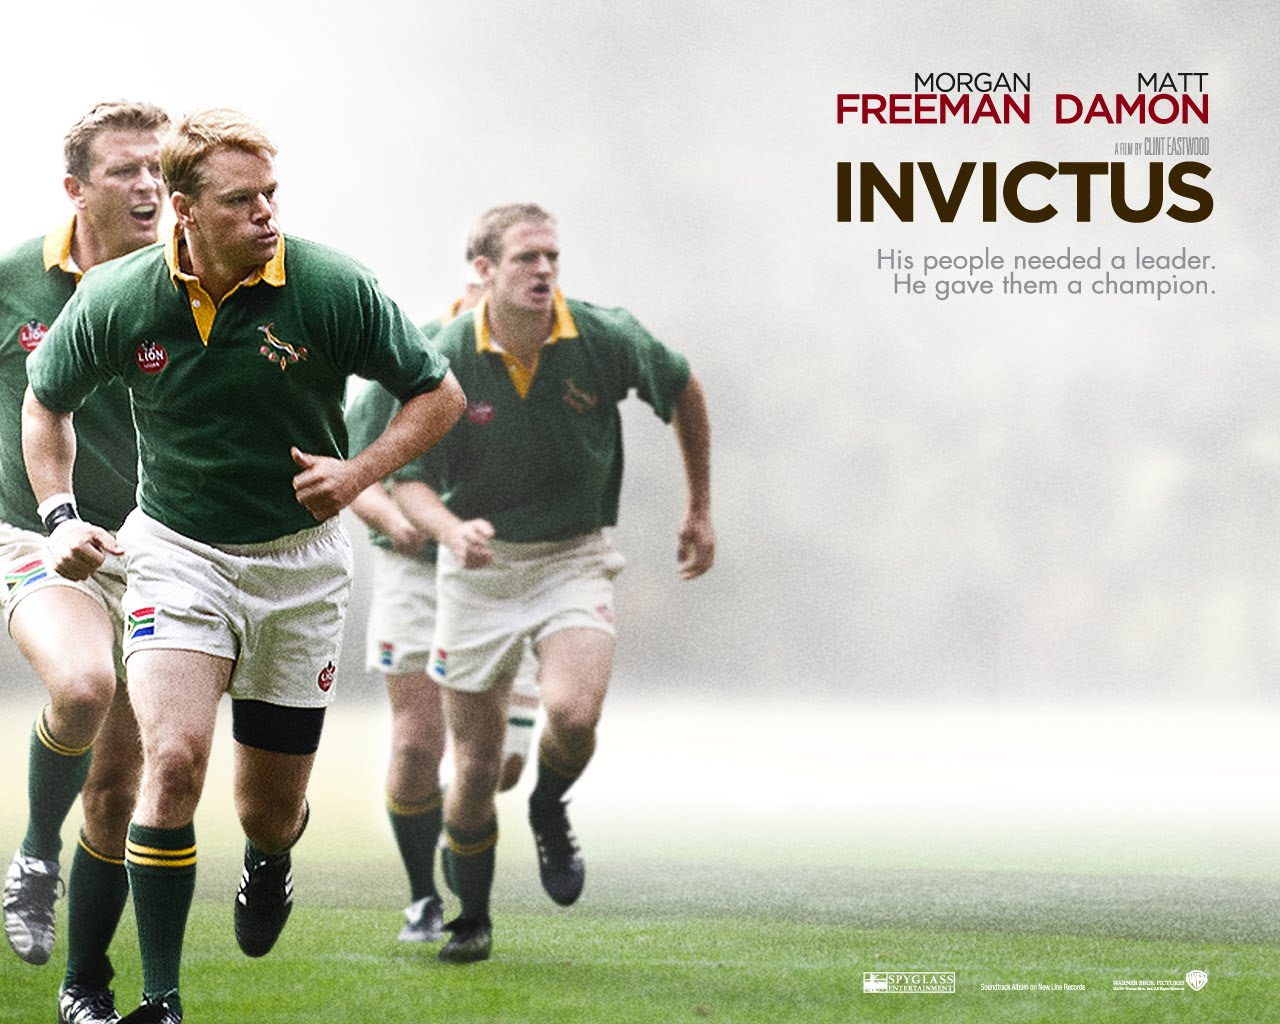 anthem to invictus Acmi education resource invictus: exploring issues of identity and belonging the context apartheid was a system of destructive and deeply unjust racism and segregation.